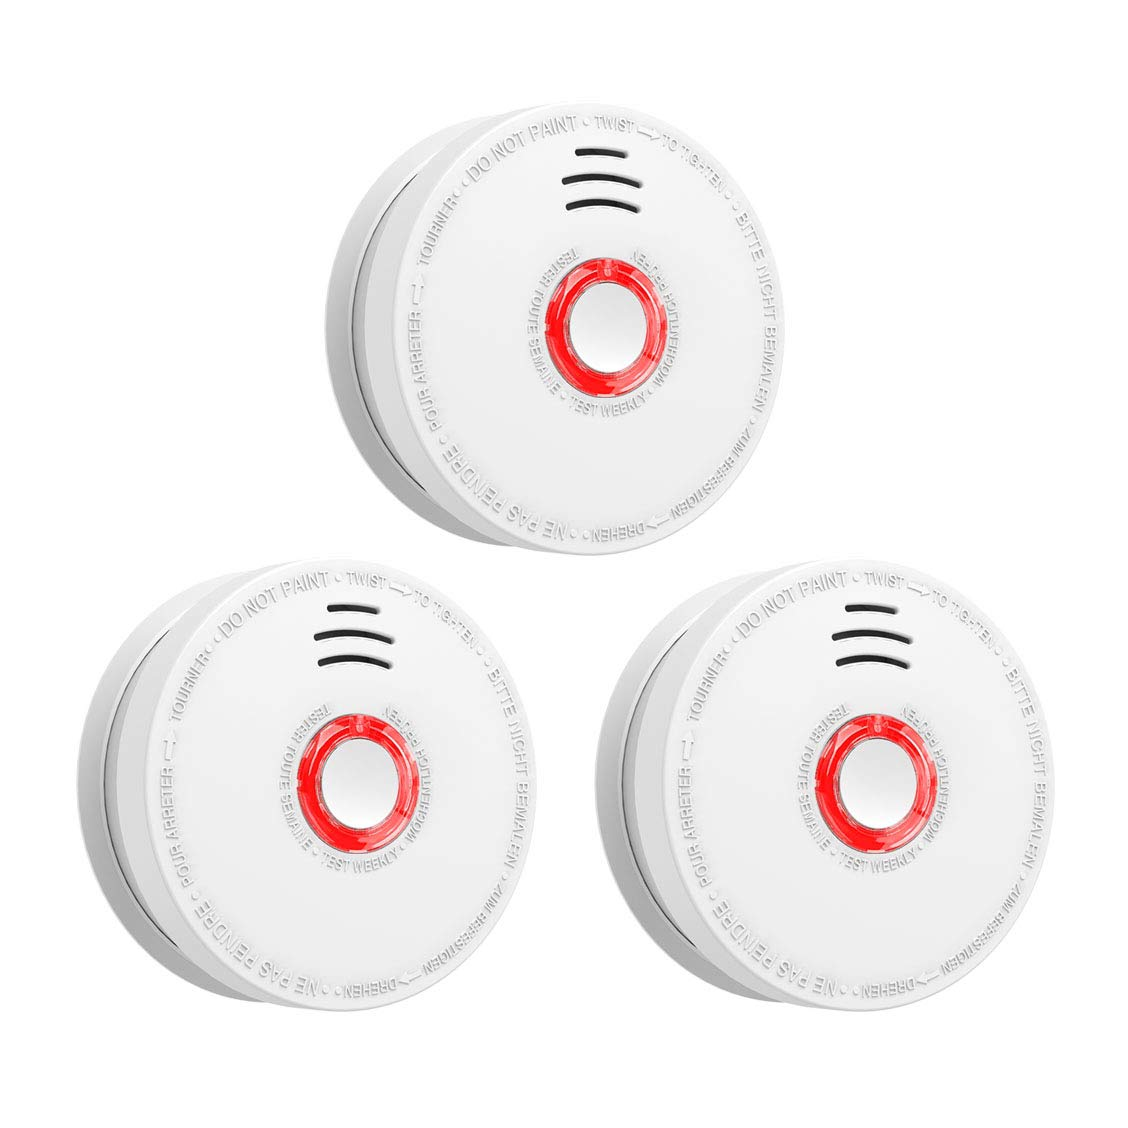 SITERWELL Smoke Detector Fire Alarm 3 Pack DC 9V Battery Included Operated Photoelectric Smoke Alarm Test Button UL Listed. Fire Detector Home Hotel etc.